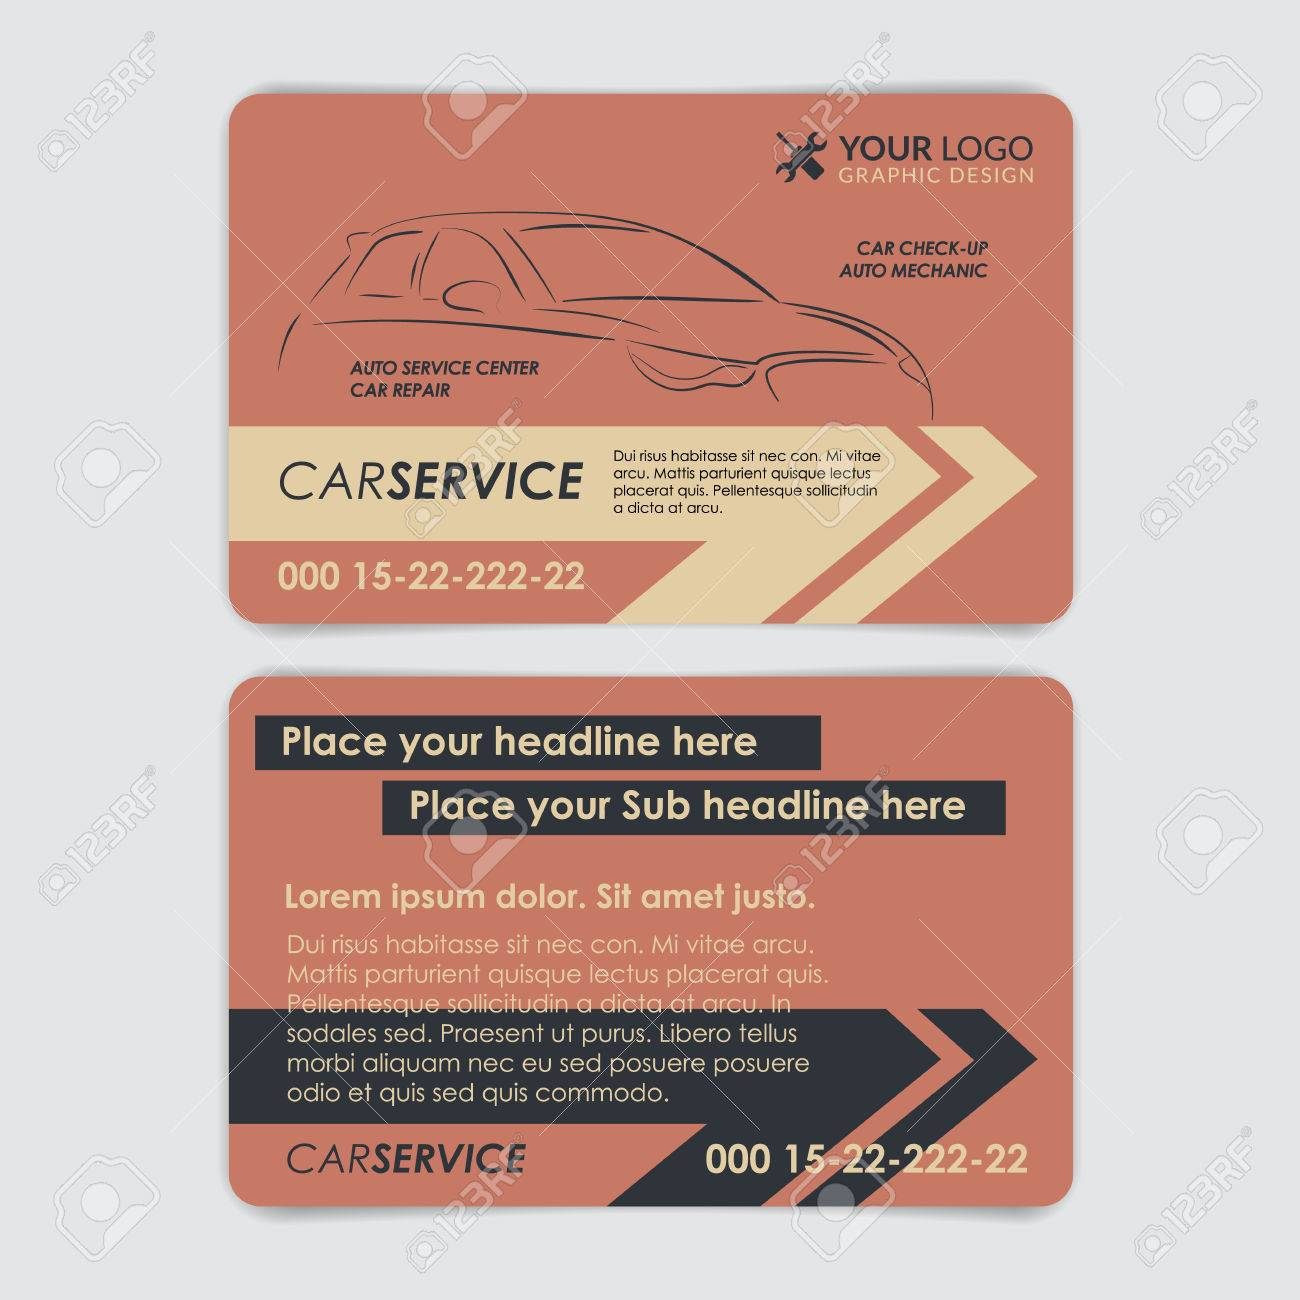 Service car business card template create your own business service car business card template create your own business cards vector illustration stock reheart